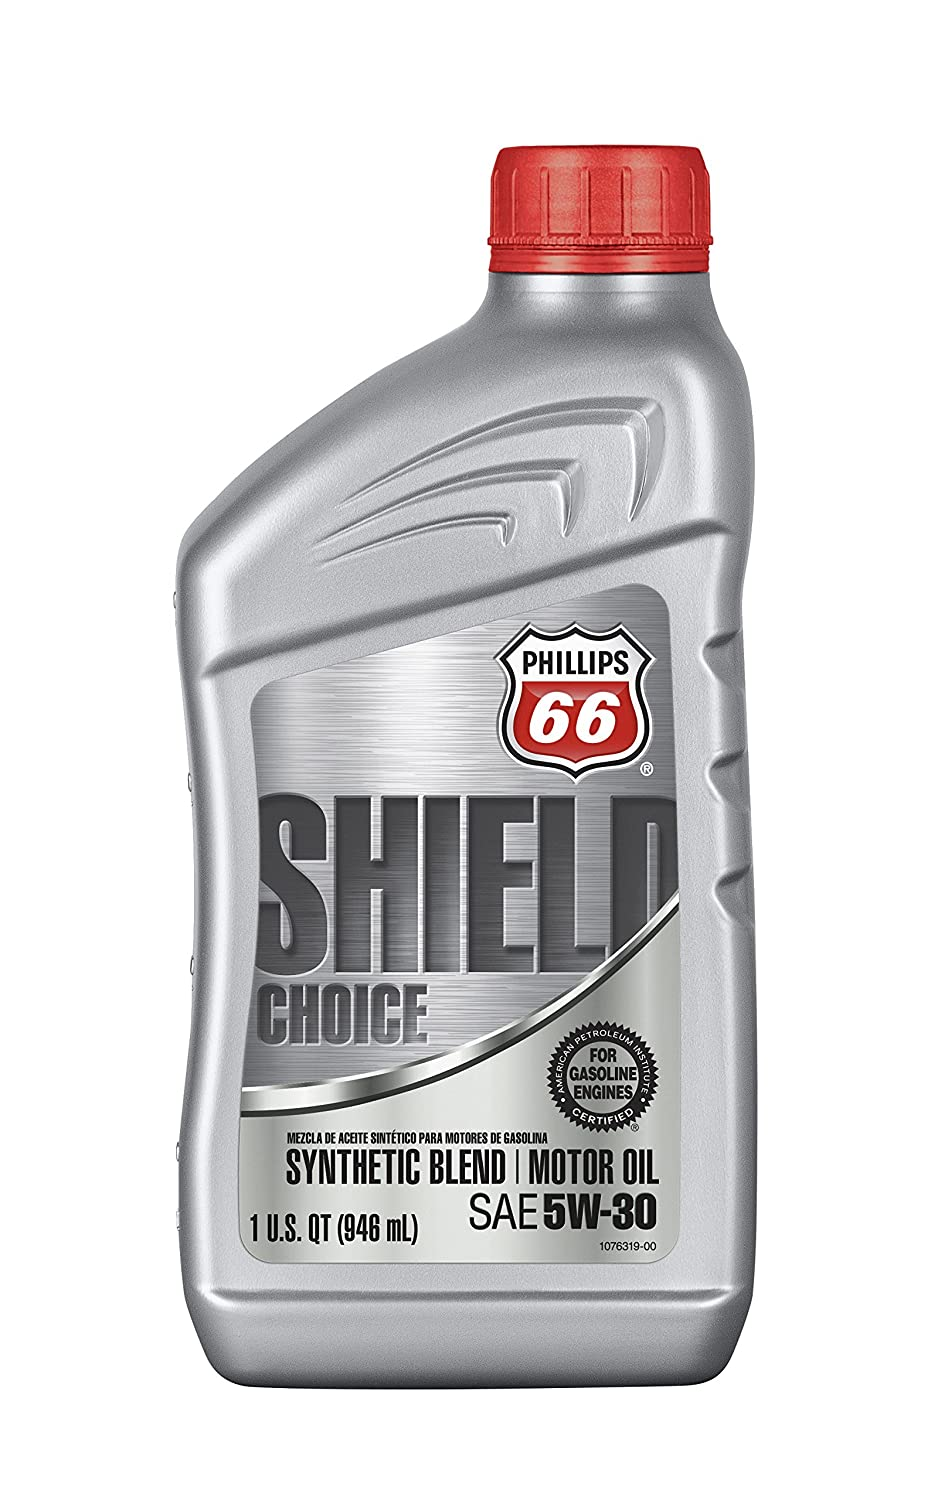 Amazon.com: Phillips 66 1074882 Blend Motor (Shield Choice Synthetic Oil 5W30-1 Quart), 32 fl. oz, 1 Pack: Automotive